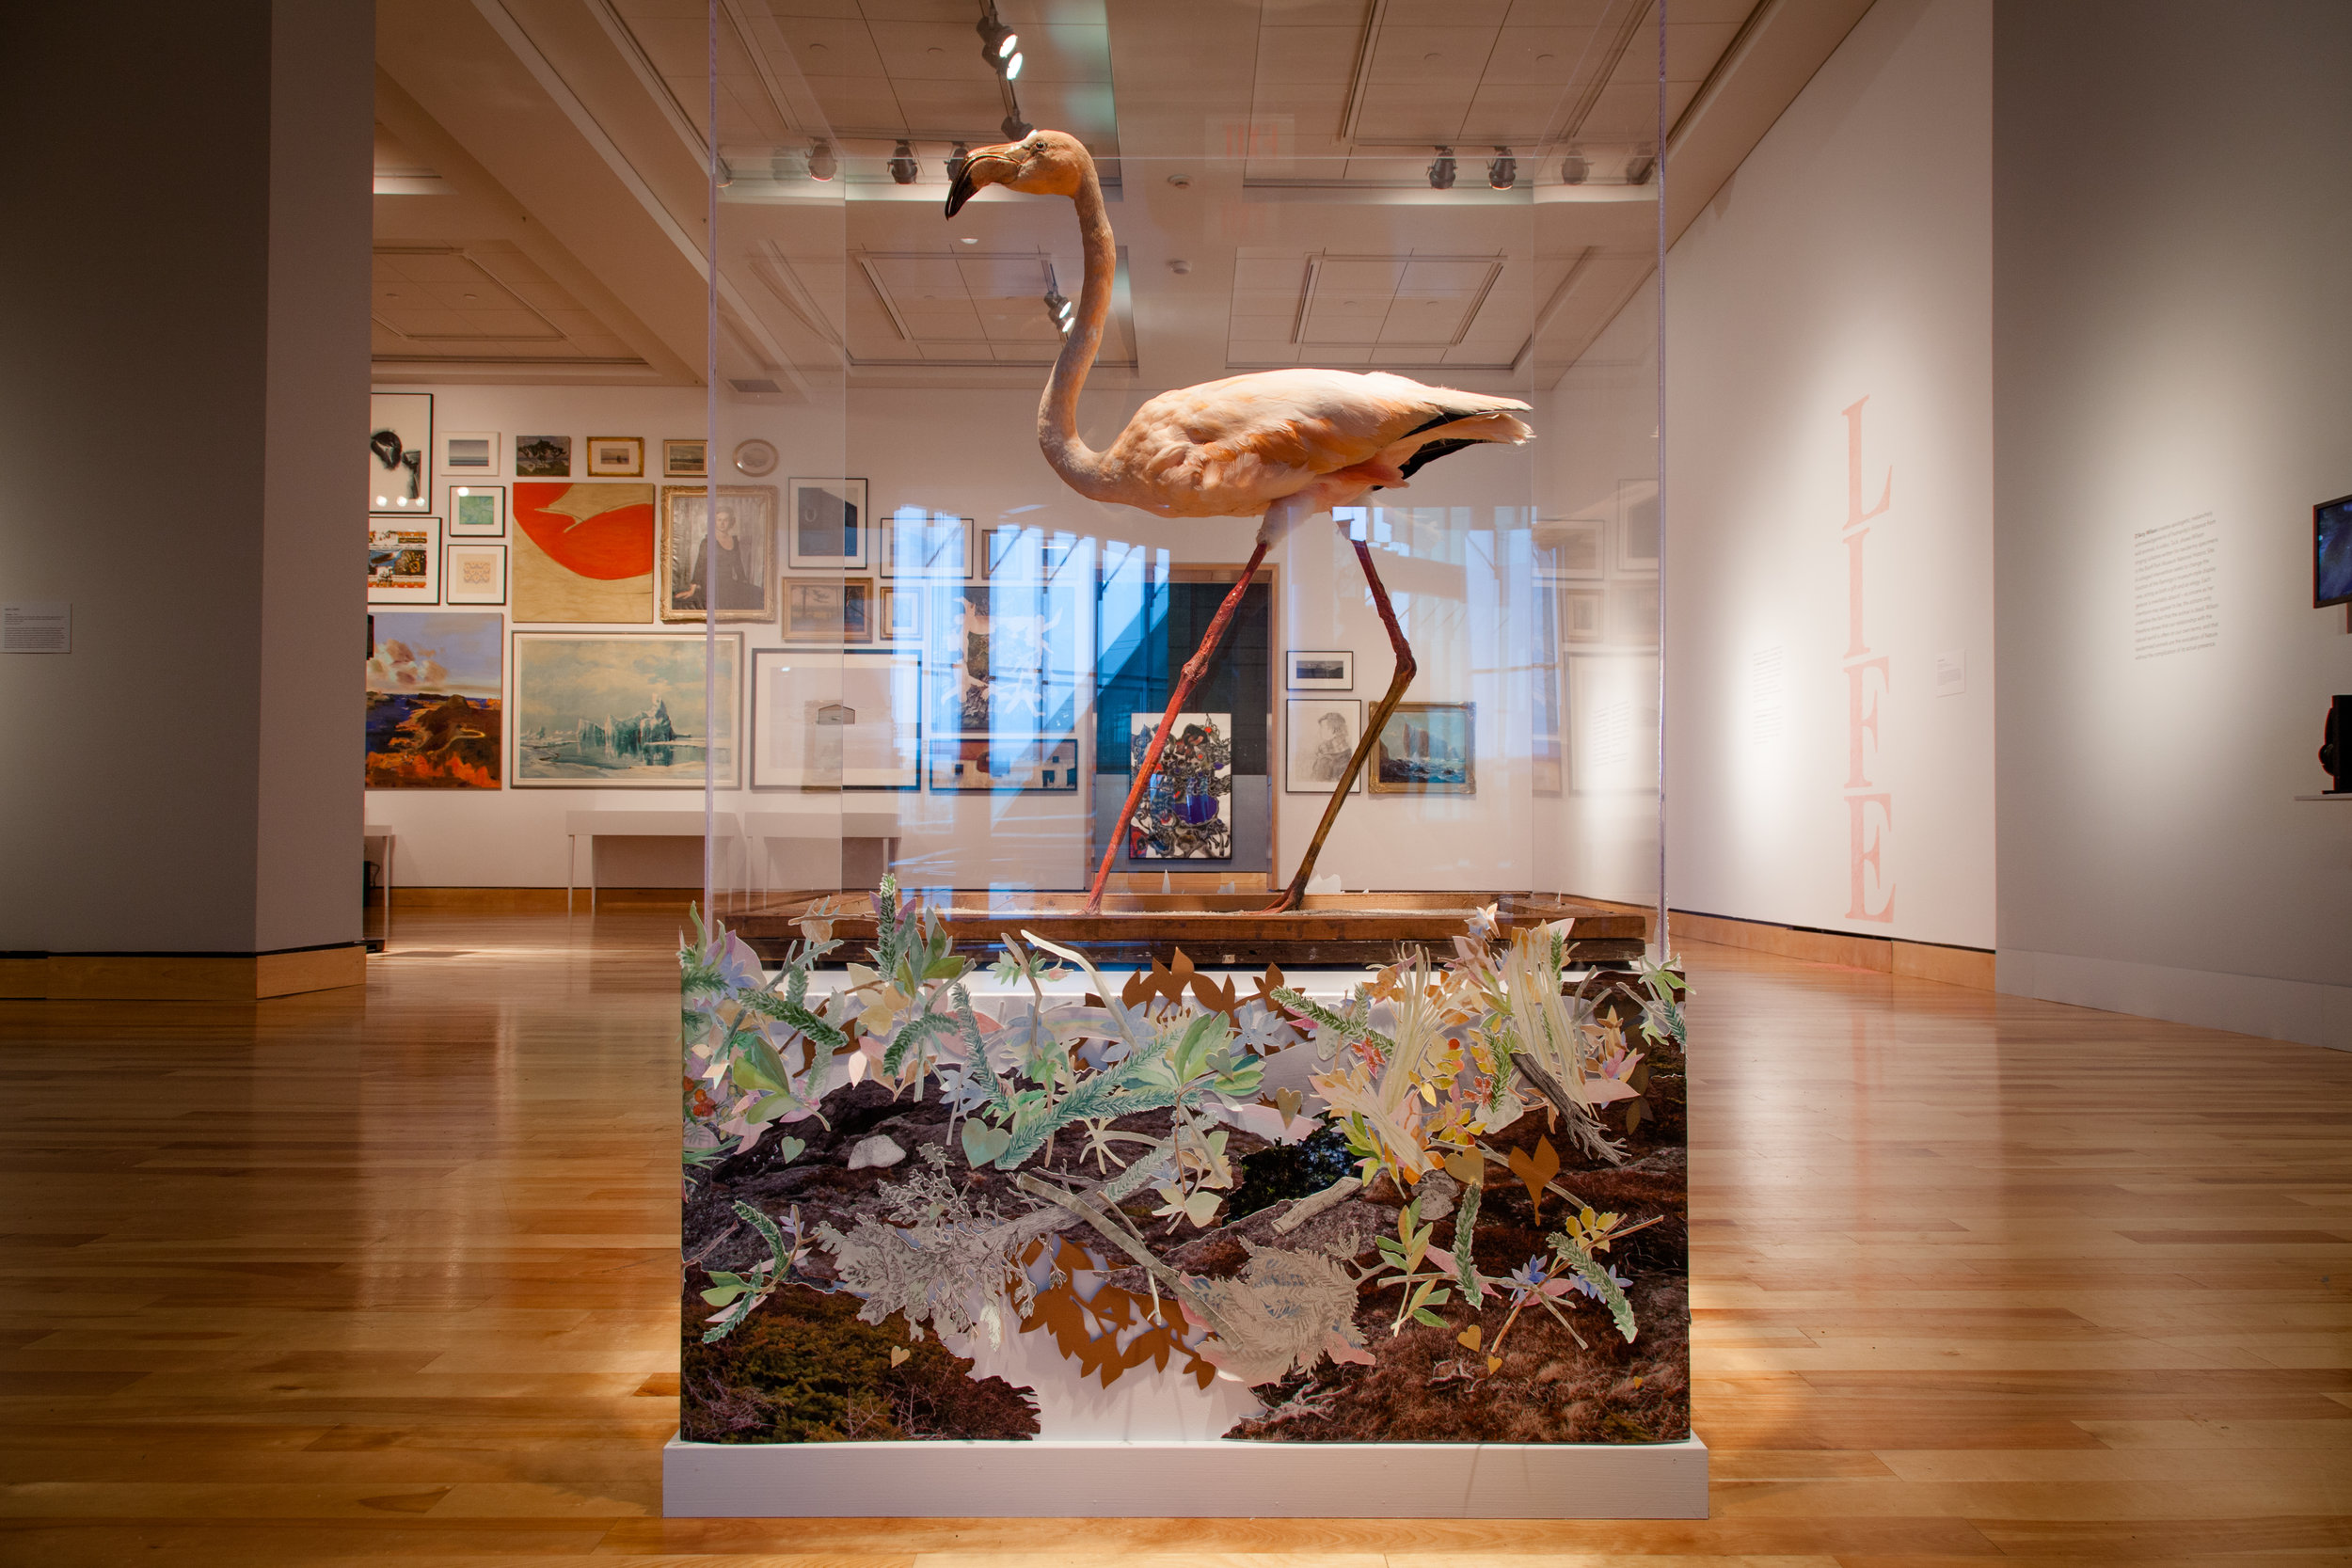 """Nest   collage: gouache, coloured paper and pencil, gold leaf, etching, and c-print on paper, 120"""" long, 18-22"""" high.   Nest  was constructed for a flamingo specimen in the collection of The Rooms (St. John's, NL). The bird was blown off course in the 1970's and seen by a fisherman flying across Newfoundland; the flamingo was shot and later donated to the museum's collection. This exhibition ( In Some Far Place,  curated by Mireille Eagan) marks the first time the bird was displayed to the public. A performance accompanies this piece— after composing a lullaby for the bird, during the opening reception for the exhibition, visitors were invited to sing with me, and together we attempted to lull the flamingo to sleep with awkward song."""